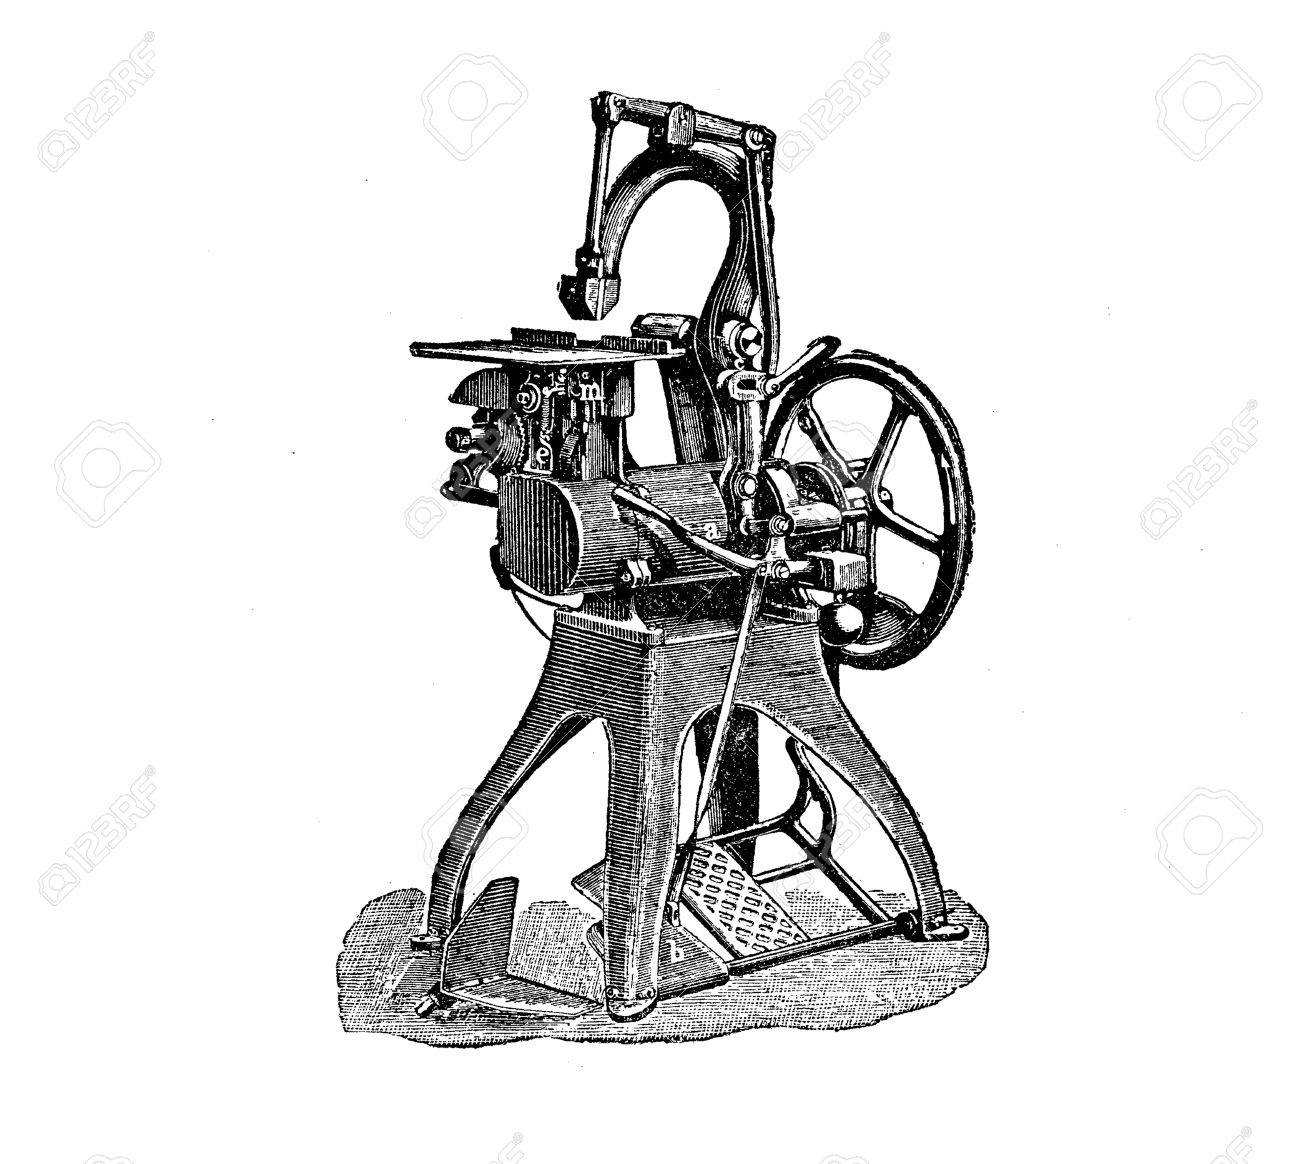 Wire Binding Machine For Press Production, Vintage Engraving Stock ...